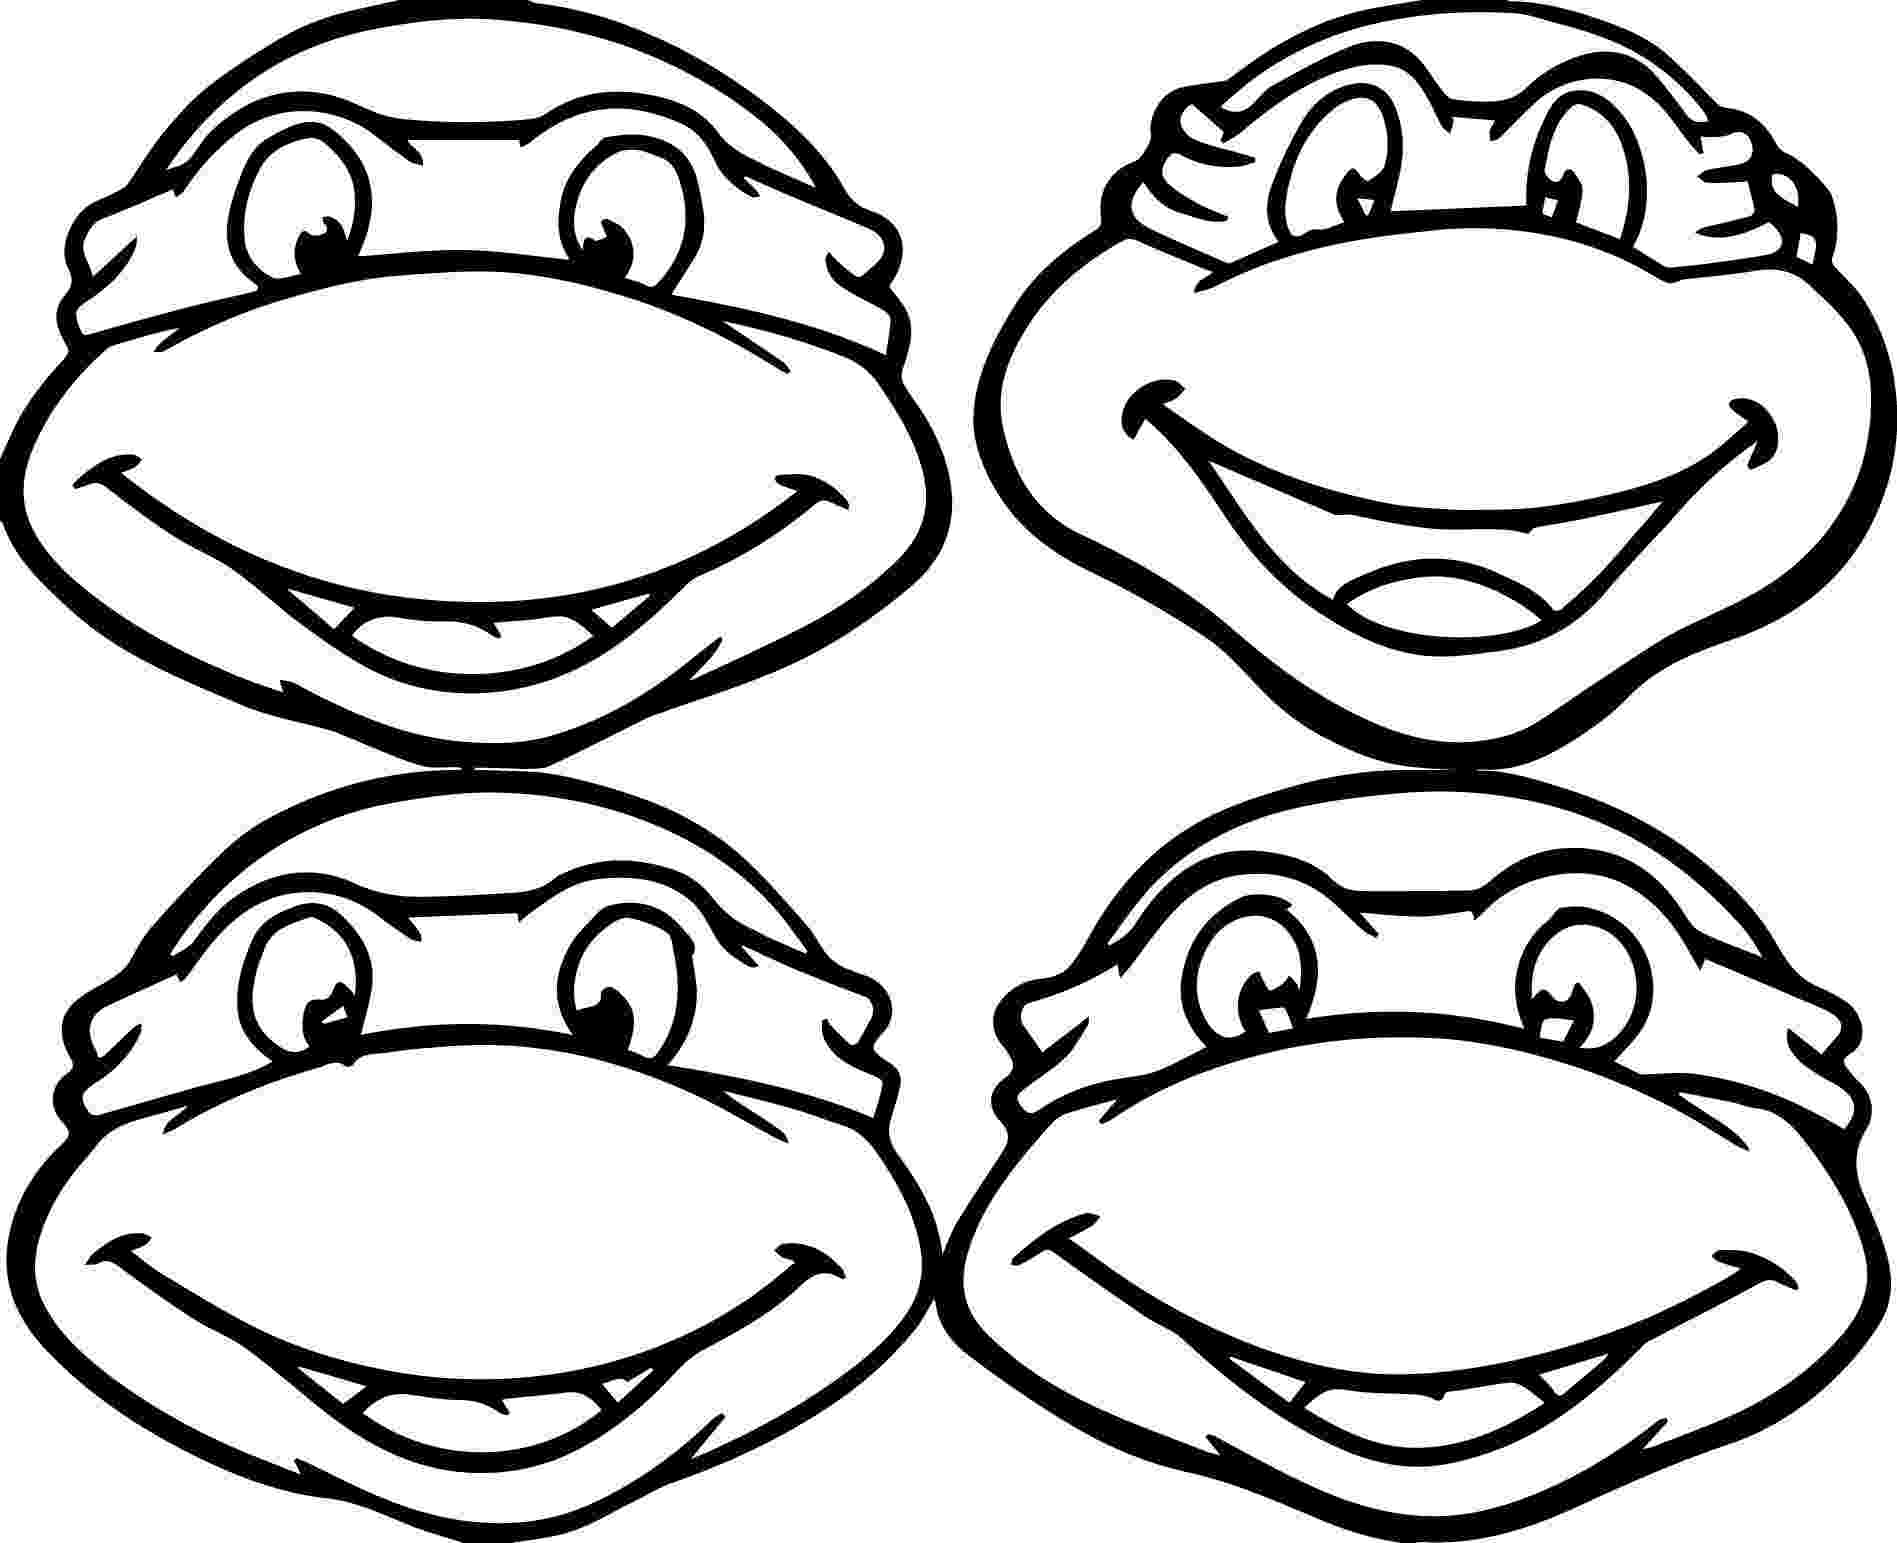 ninja turtles coloring pages to print teenage mutant ninja turtles coloring pages best pages ninja print coloring to turtles